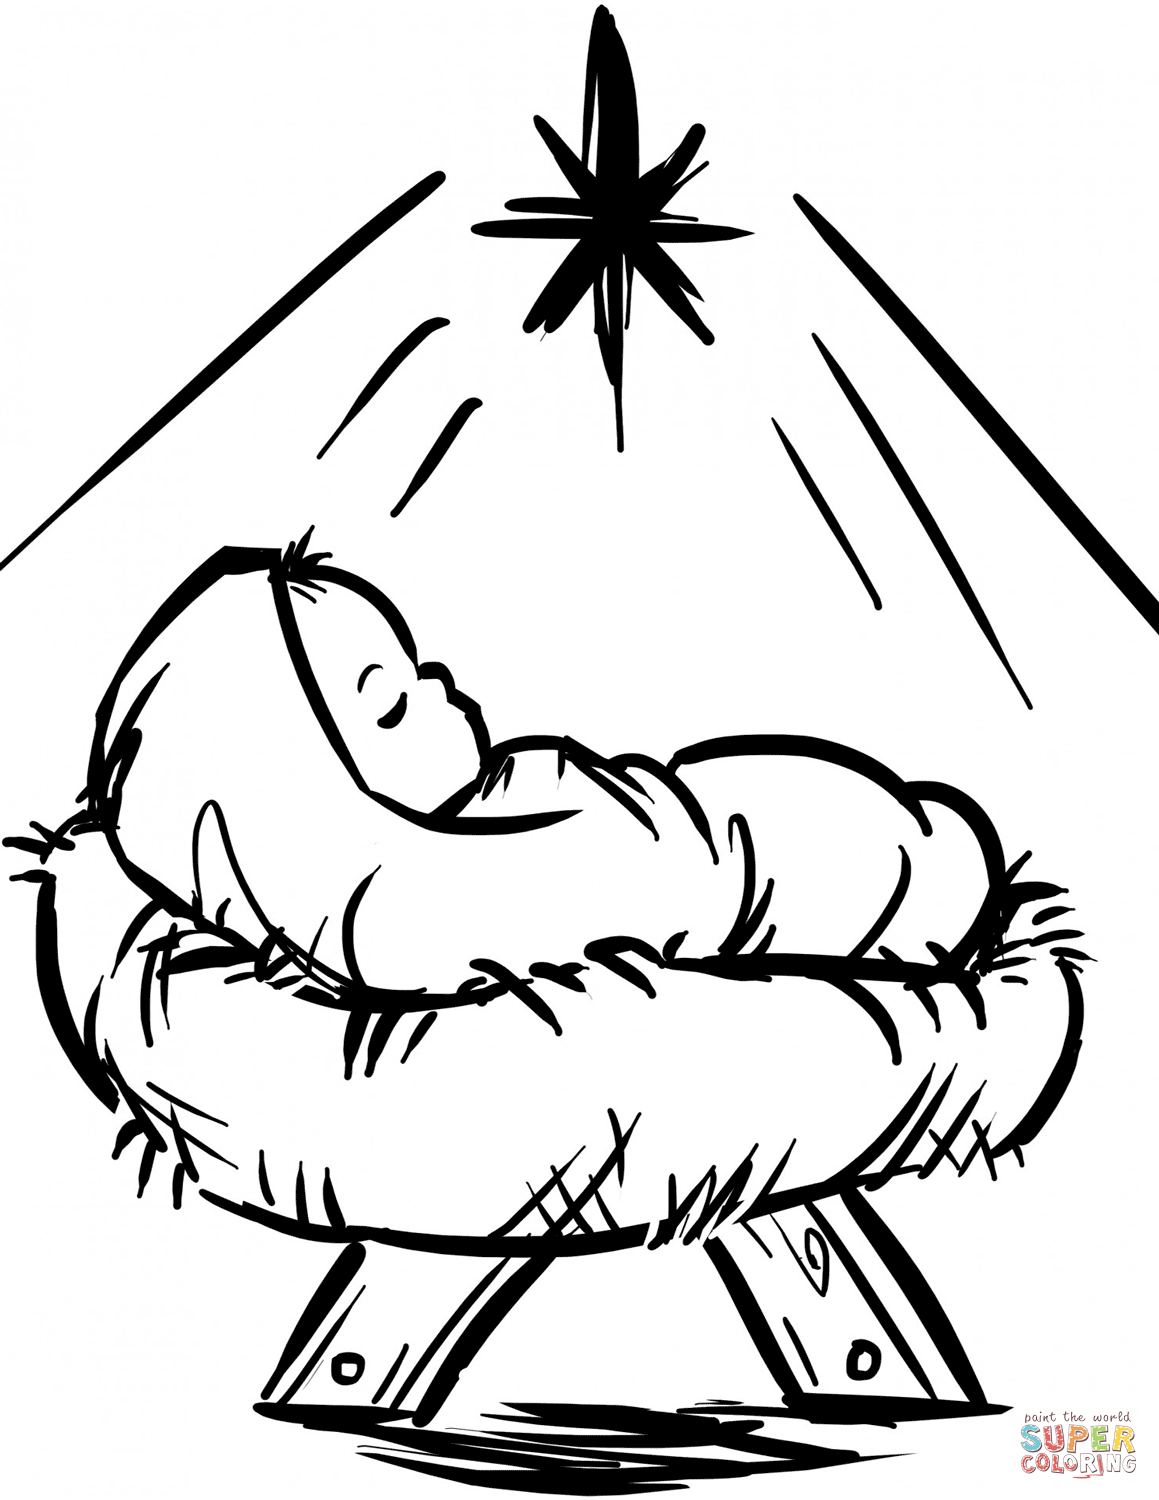 baby jesus pictures to color 24 best coloring bible nt acts images on pinterest color to baby pictures jesus